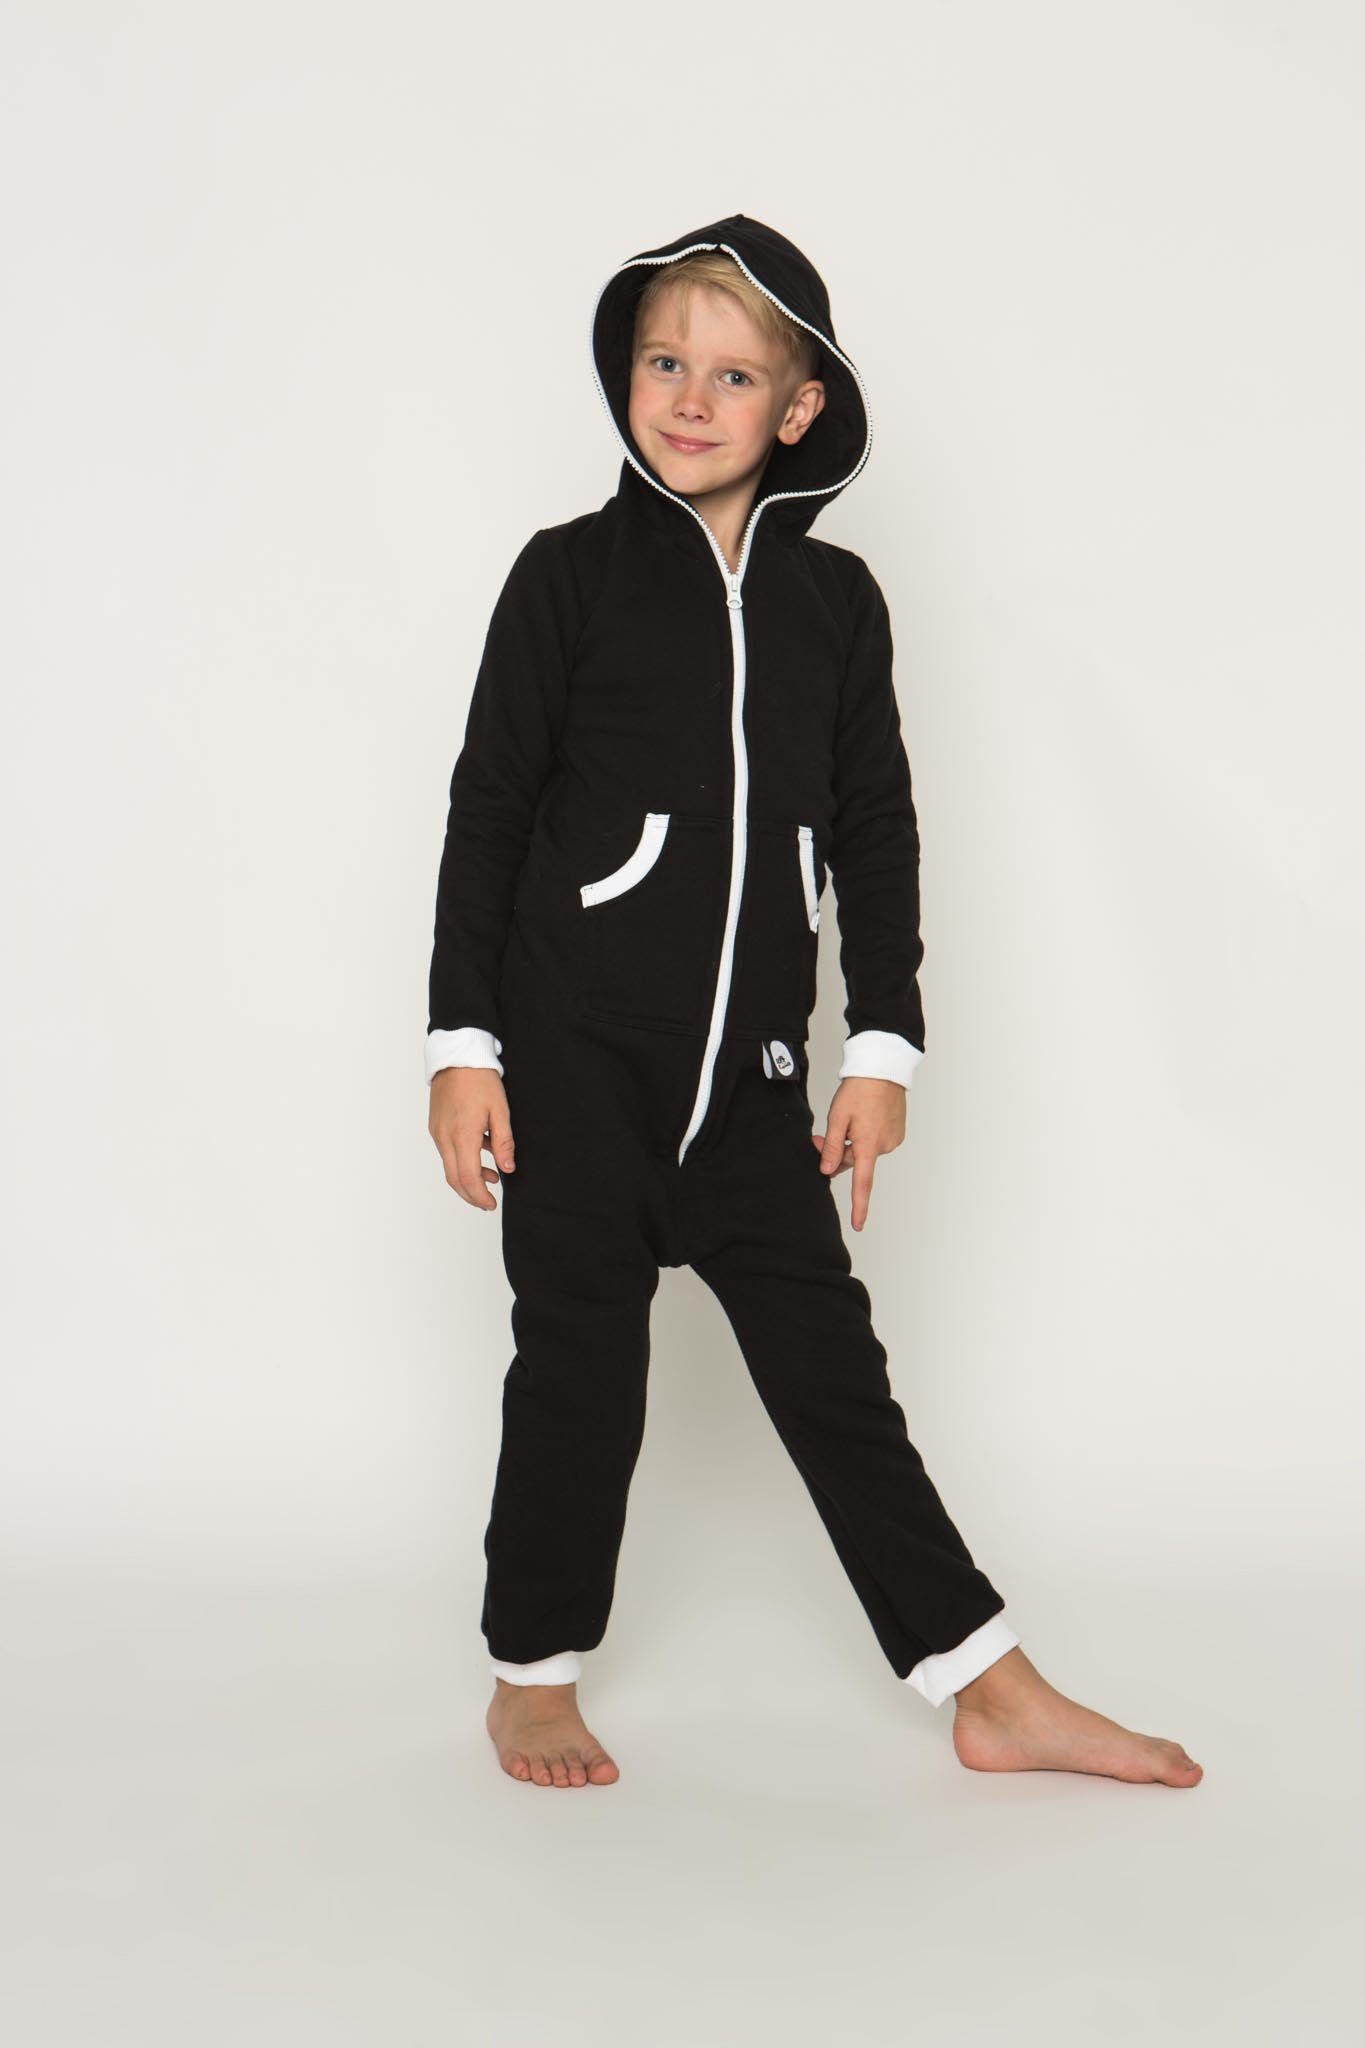 Sofa Killer black unisex kids onesie with white cuffs